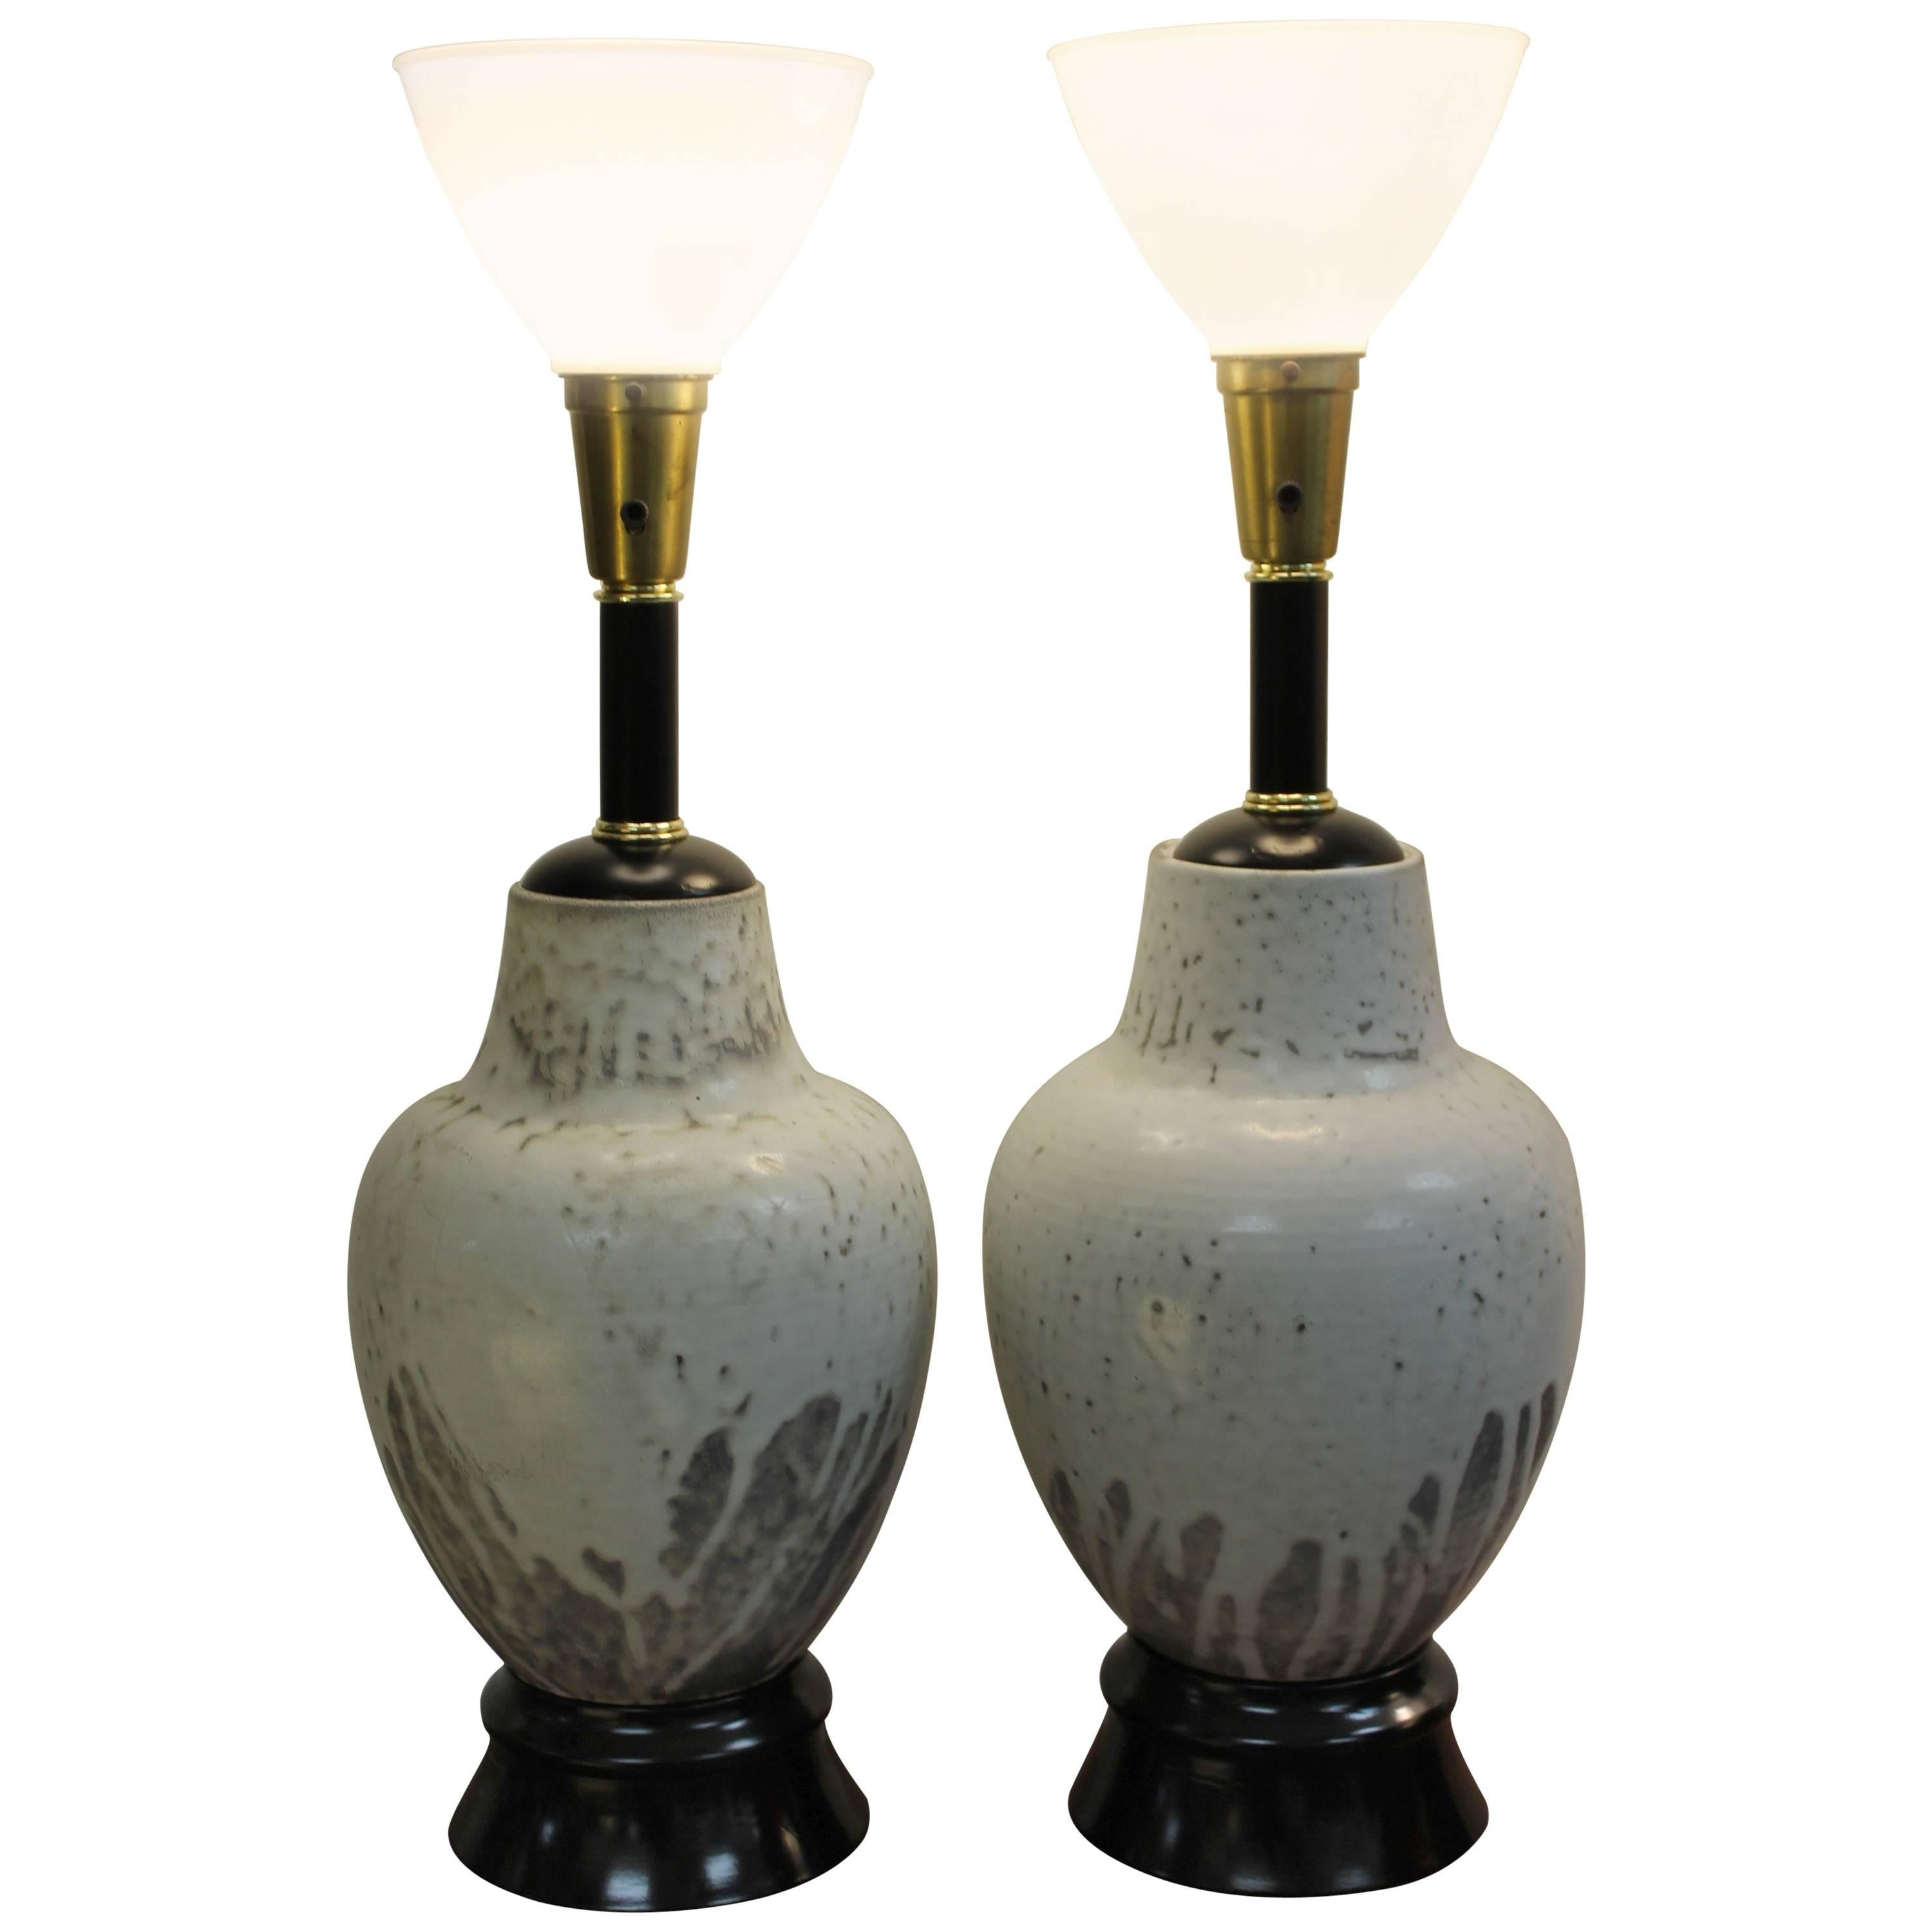 Pair of Ceramic Lamps by Mobach